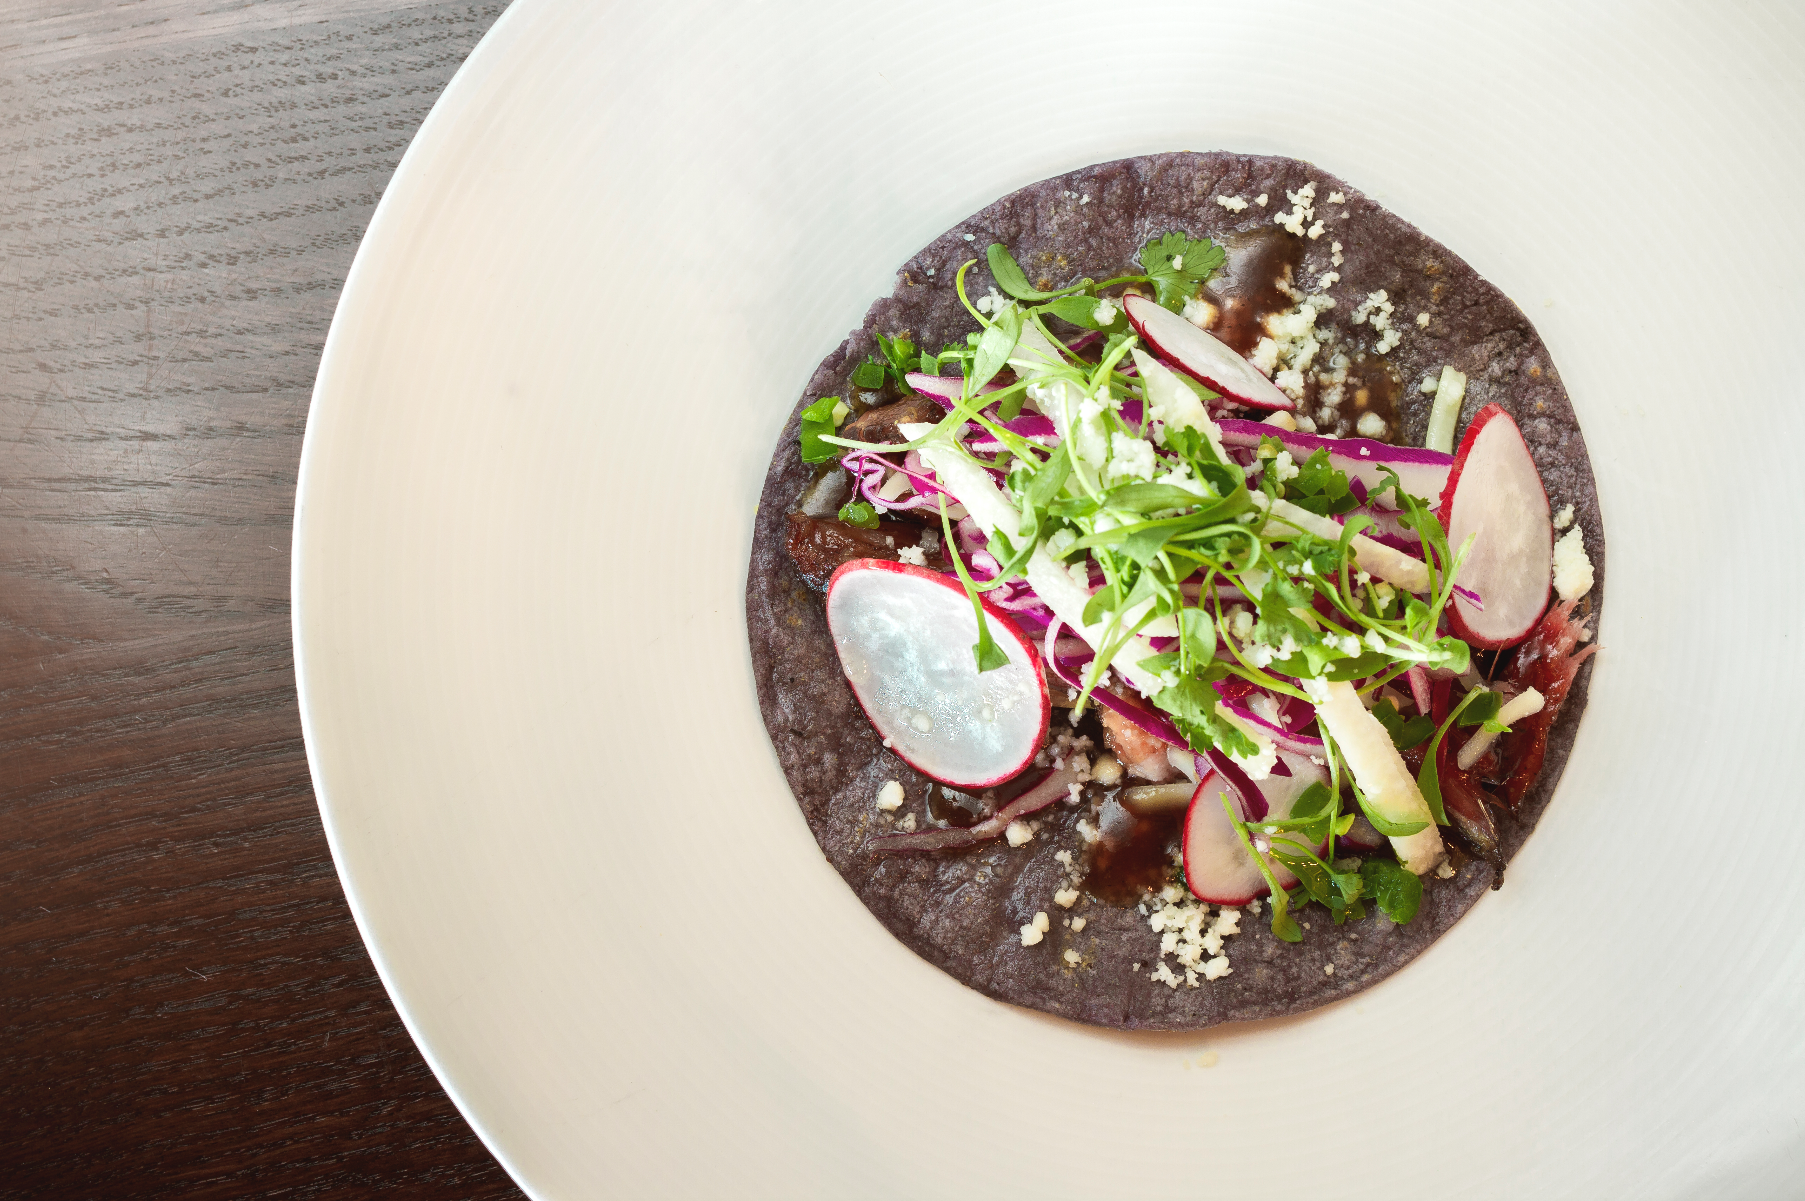 From hog jowl tacos ($18) to bison burgers, Black Sheep at Epic Brewing Sugarhouse has all the contemporary Southwestern and Native American–inspired fixings you'll need to pair with your brews. Photo: Talyn Sherer.